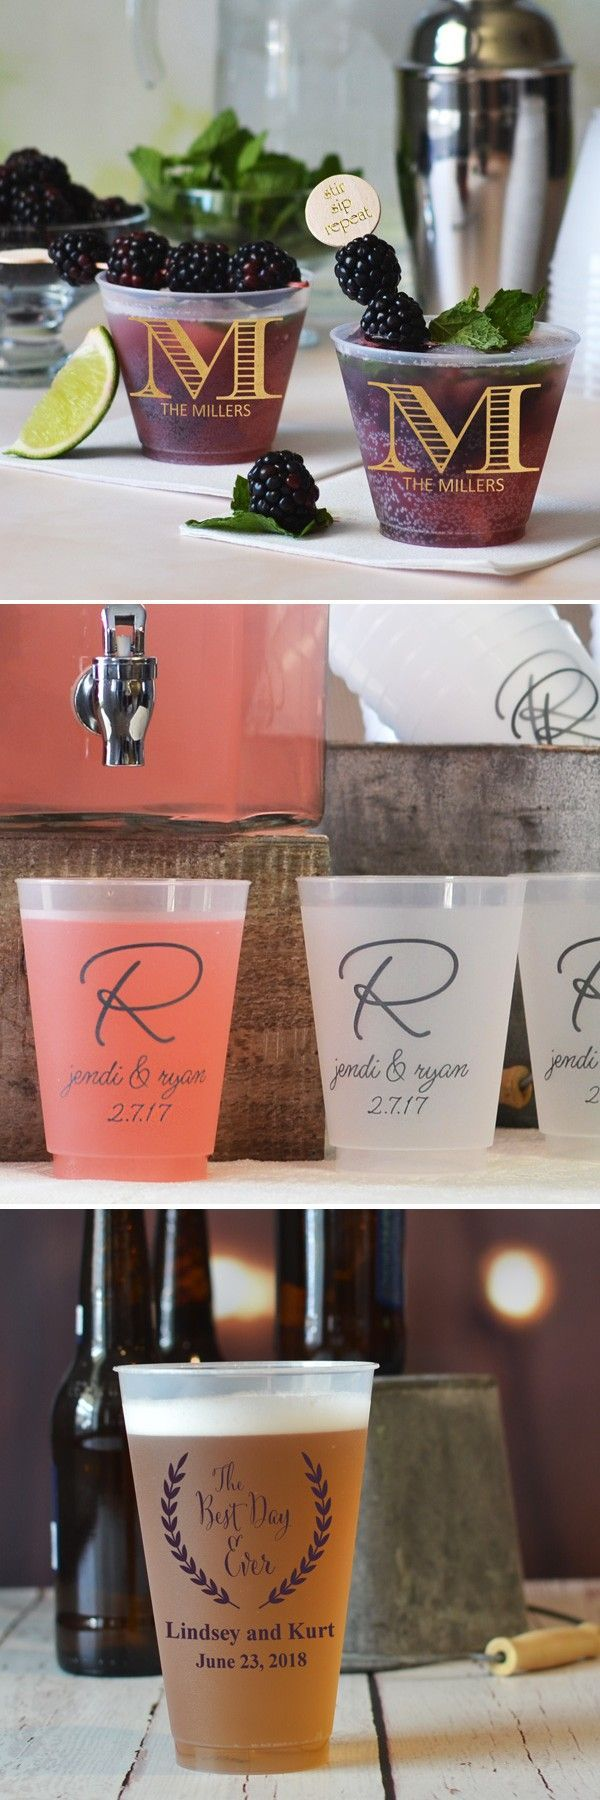 Perfect For Punch Lemonade And Iced Tea Drink Stations Or Wedding